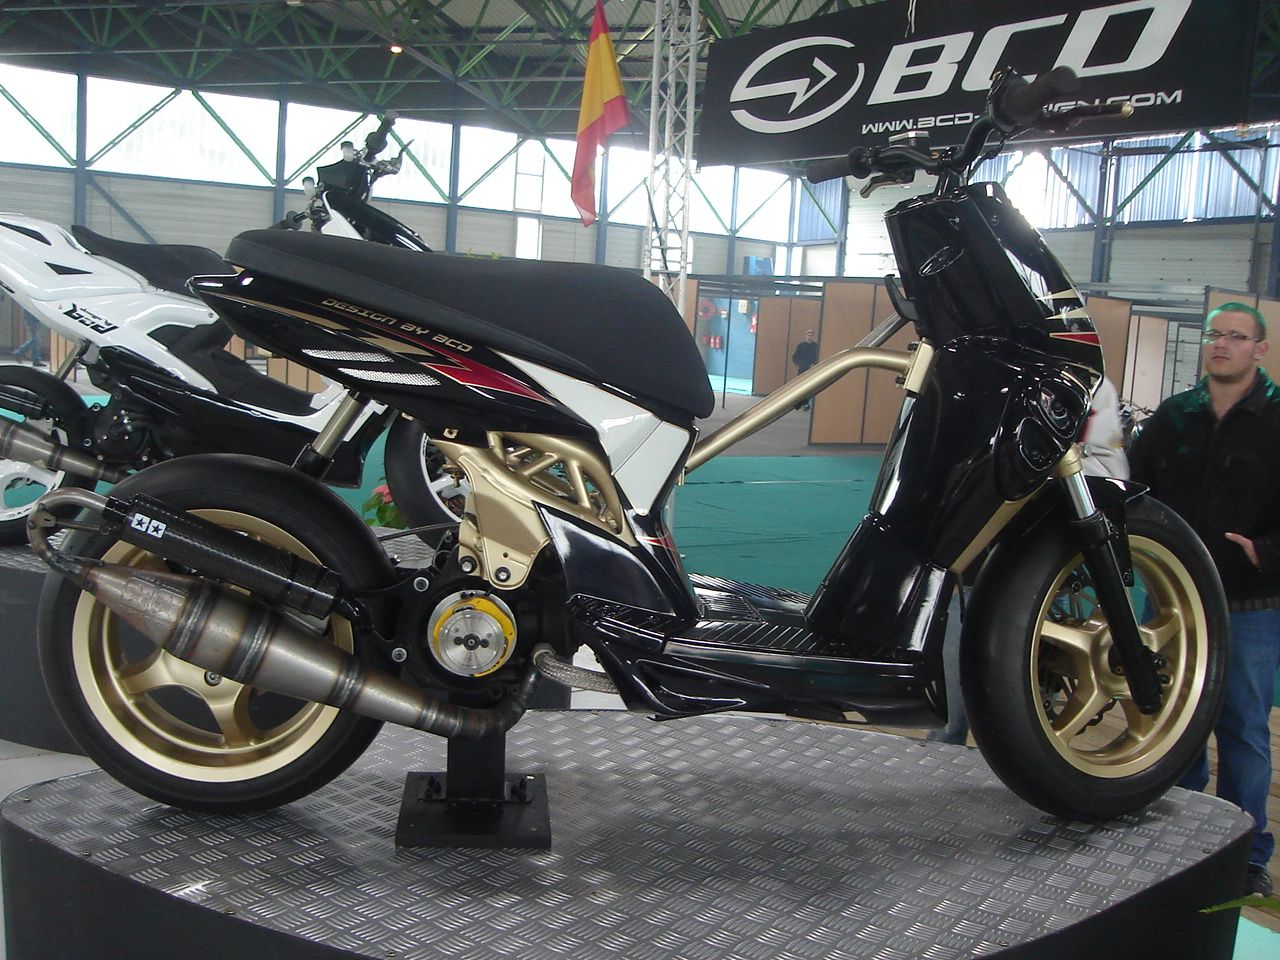 mbk stunt lc tuned by bcd 2 roues 50cc voiture vehicule et roue. Black Bedroom Furniture Sets. Home Design Ideas